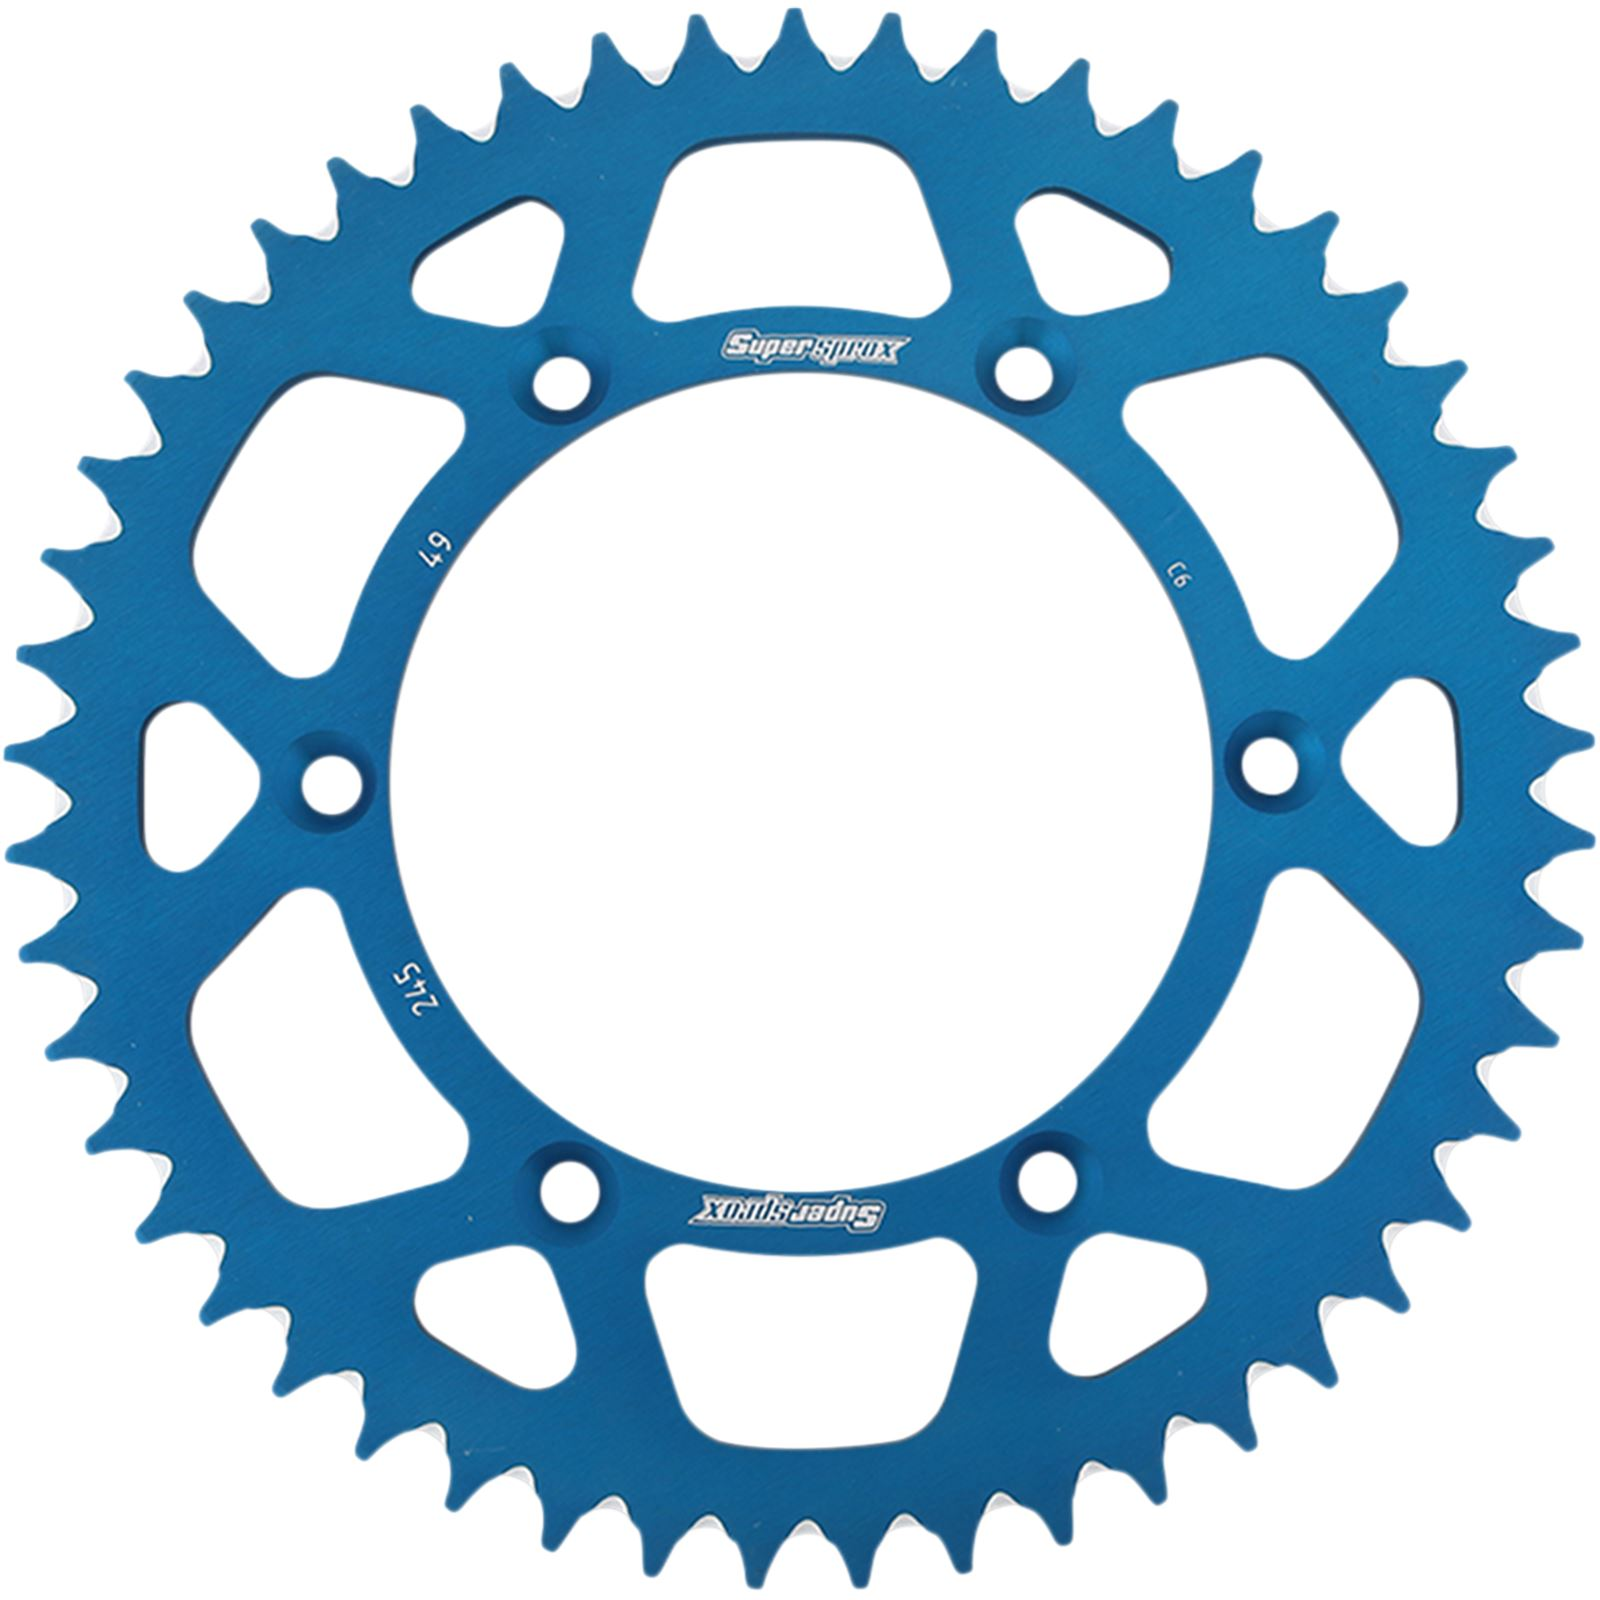 Supersprox Rear Sprocket - Blue for Yamaha - 49-Tooth